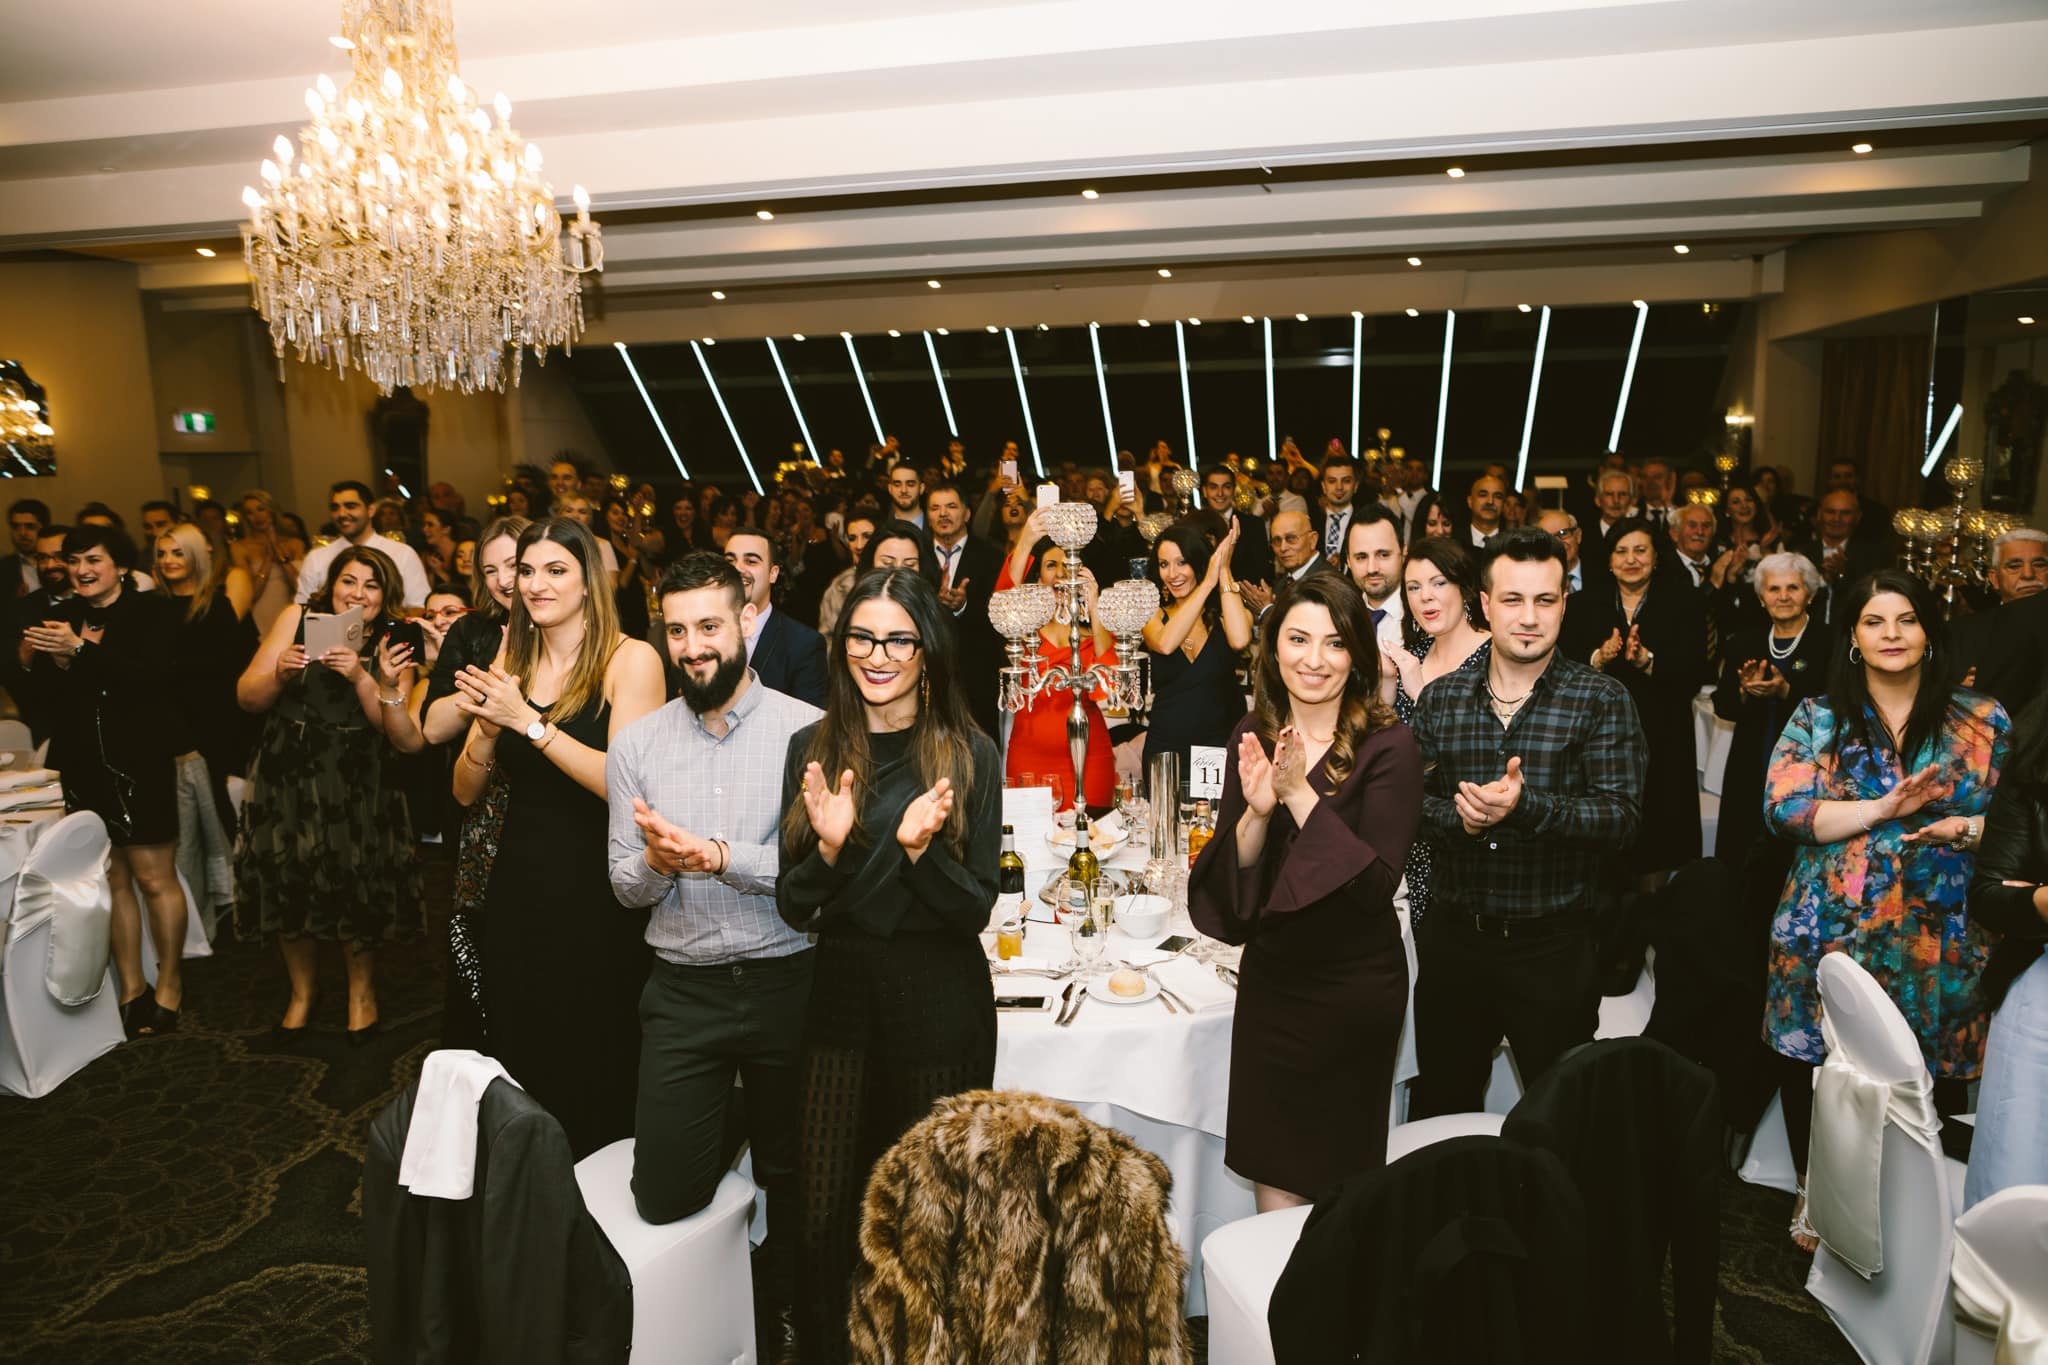 crowd cheering at wedding party